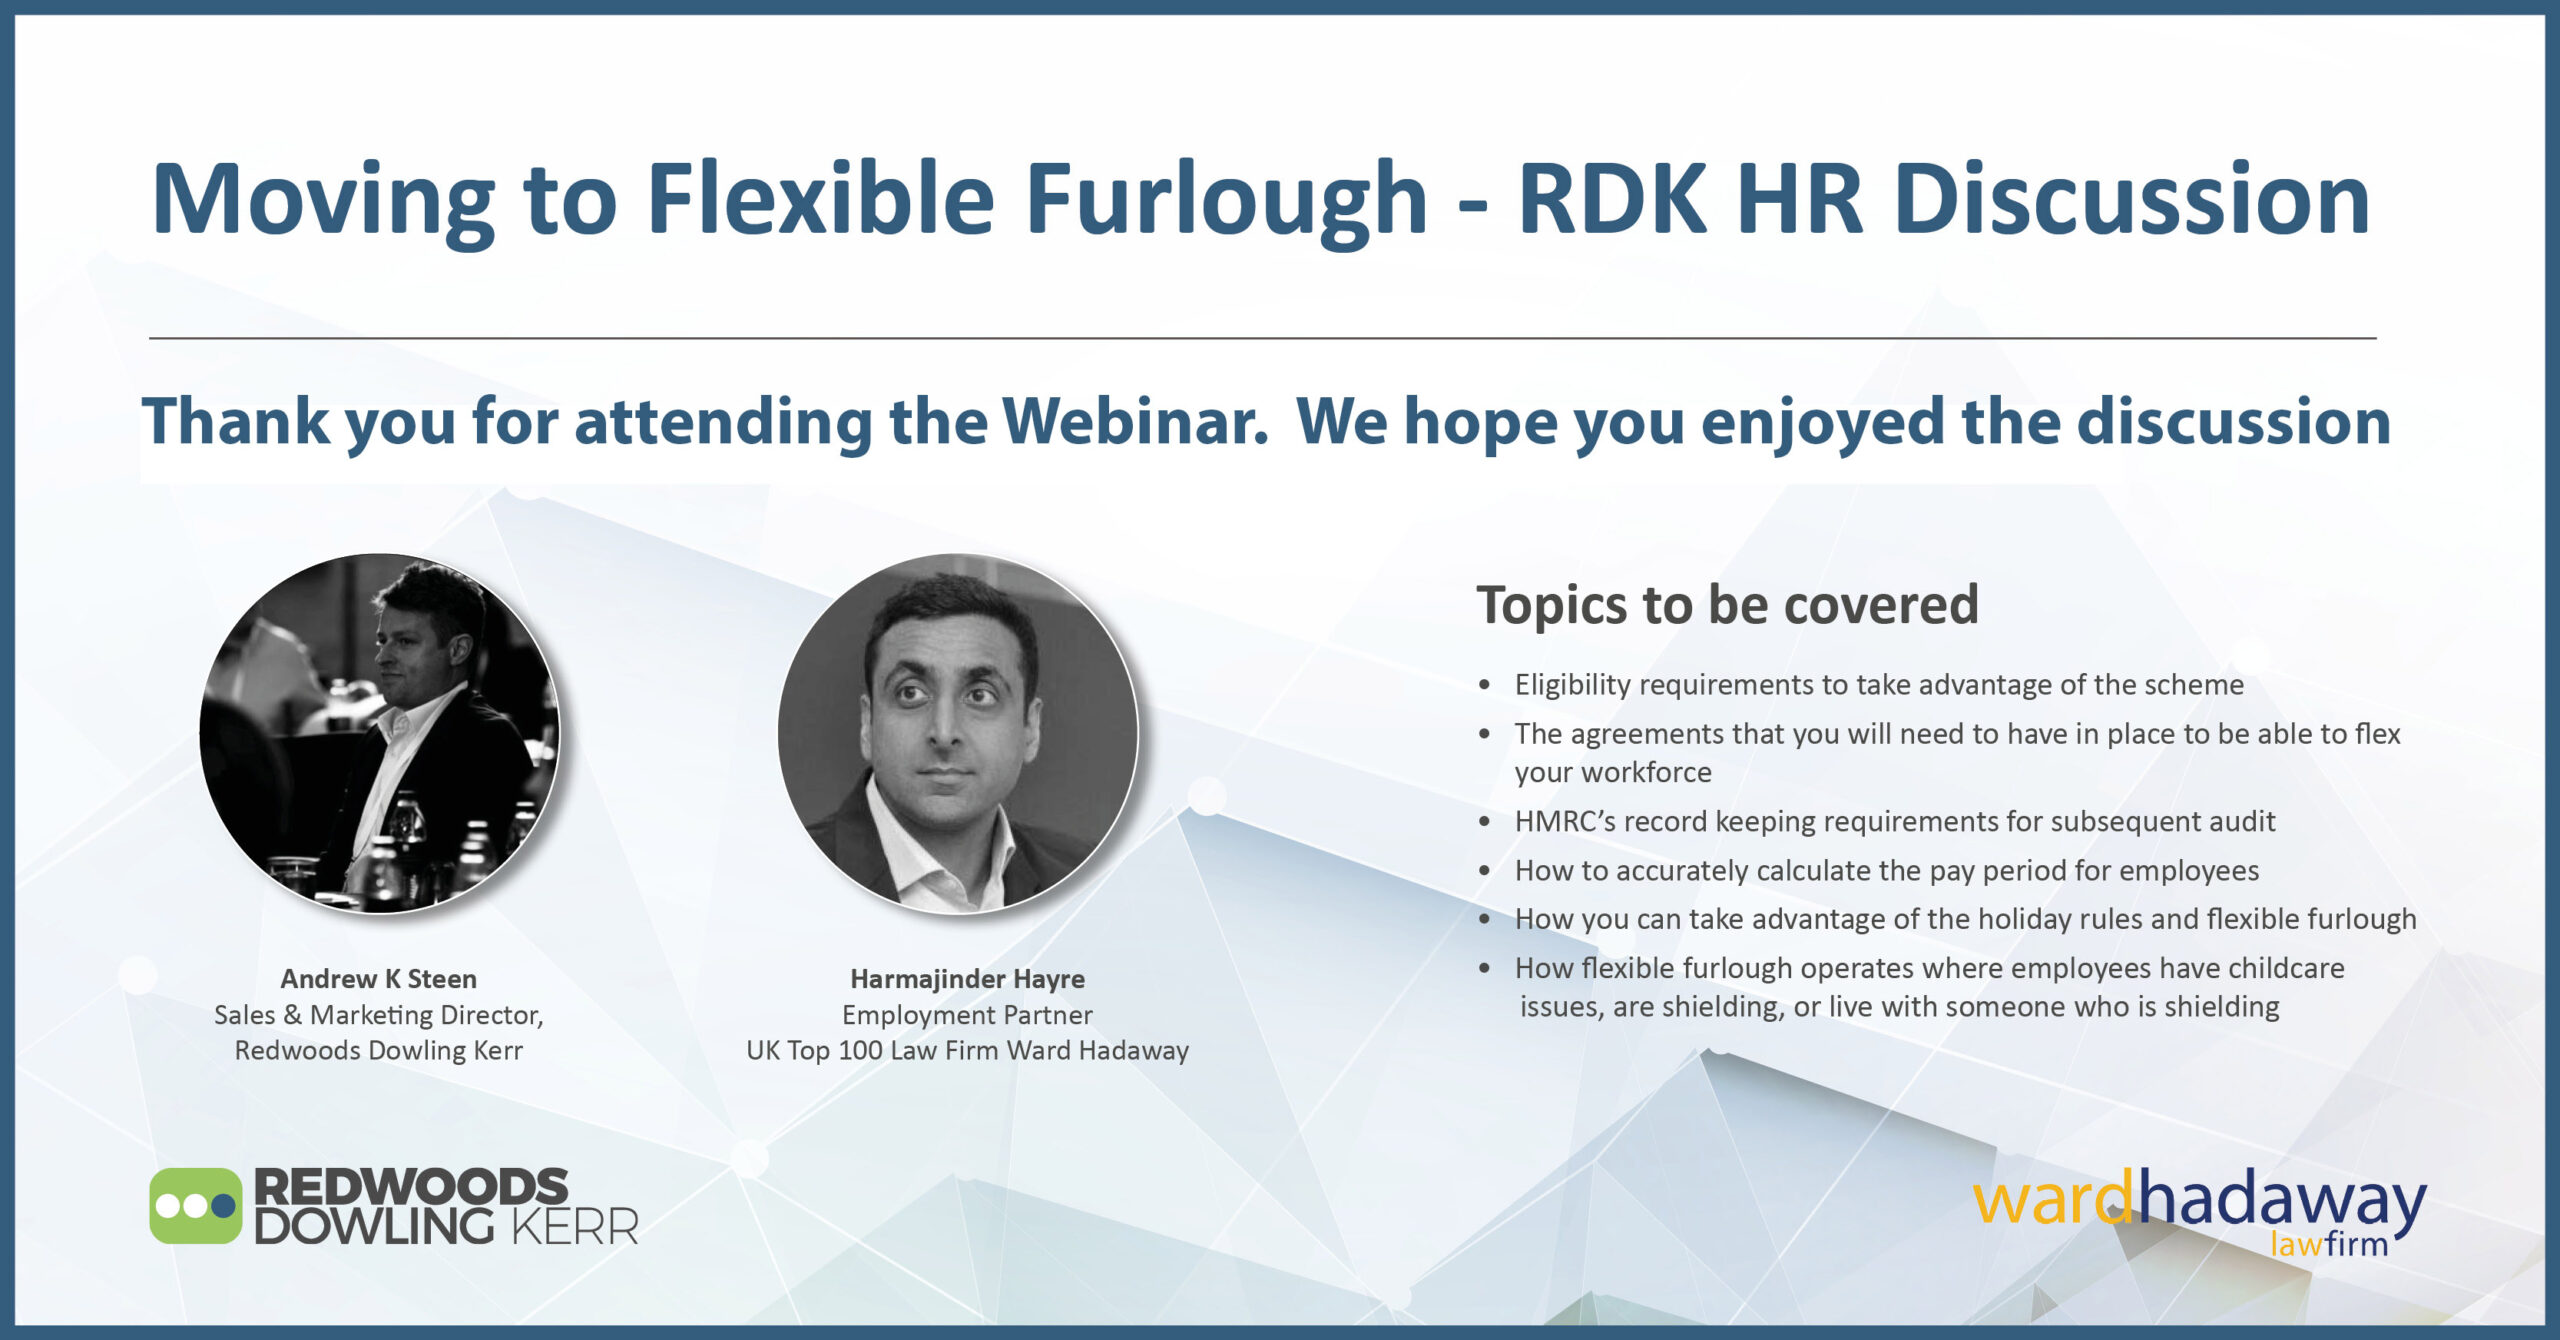 Moving to Flexible Furlough – RDK HR Discussion